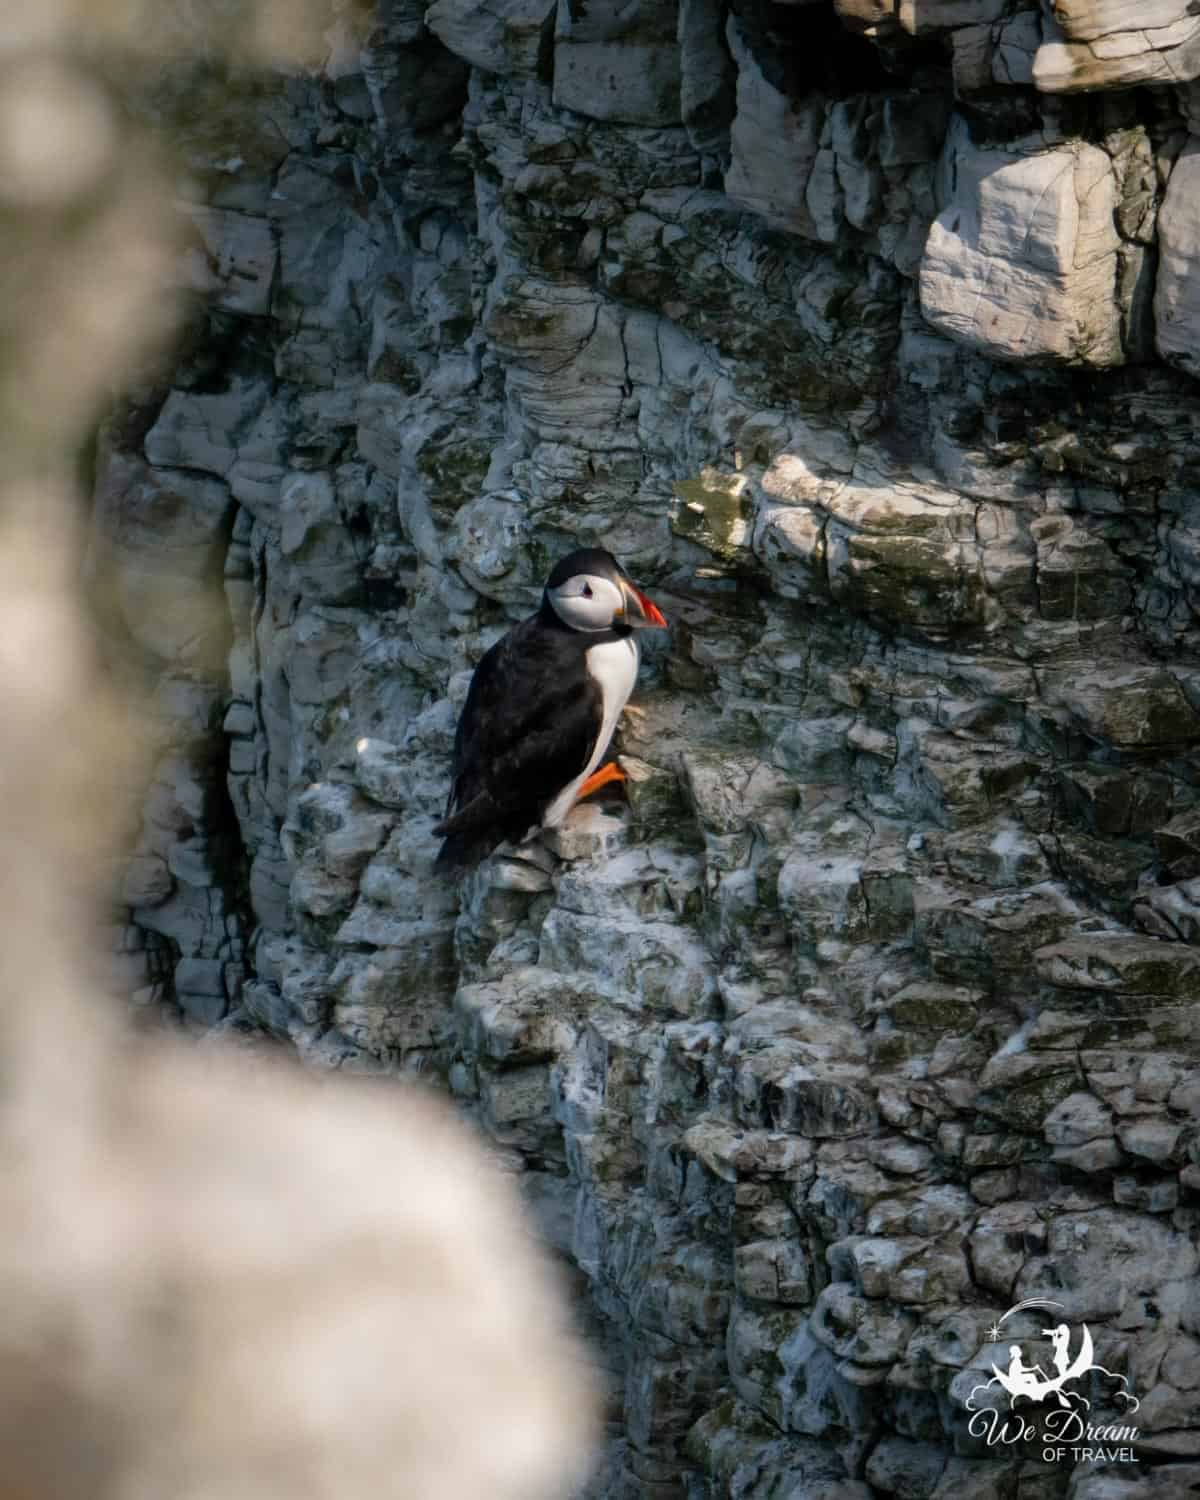 A puffin on the face of a sheer cliff at Bempton Cliffs in Yorkshire.